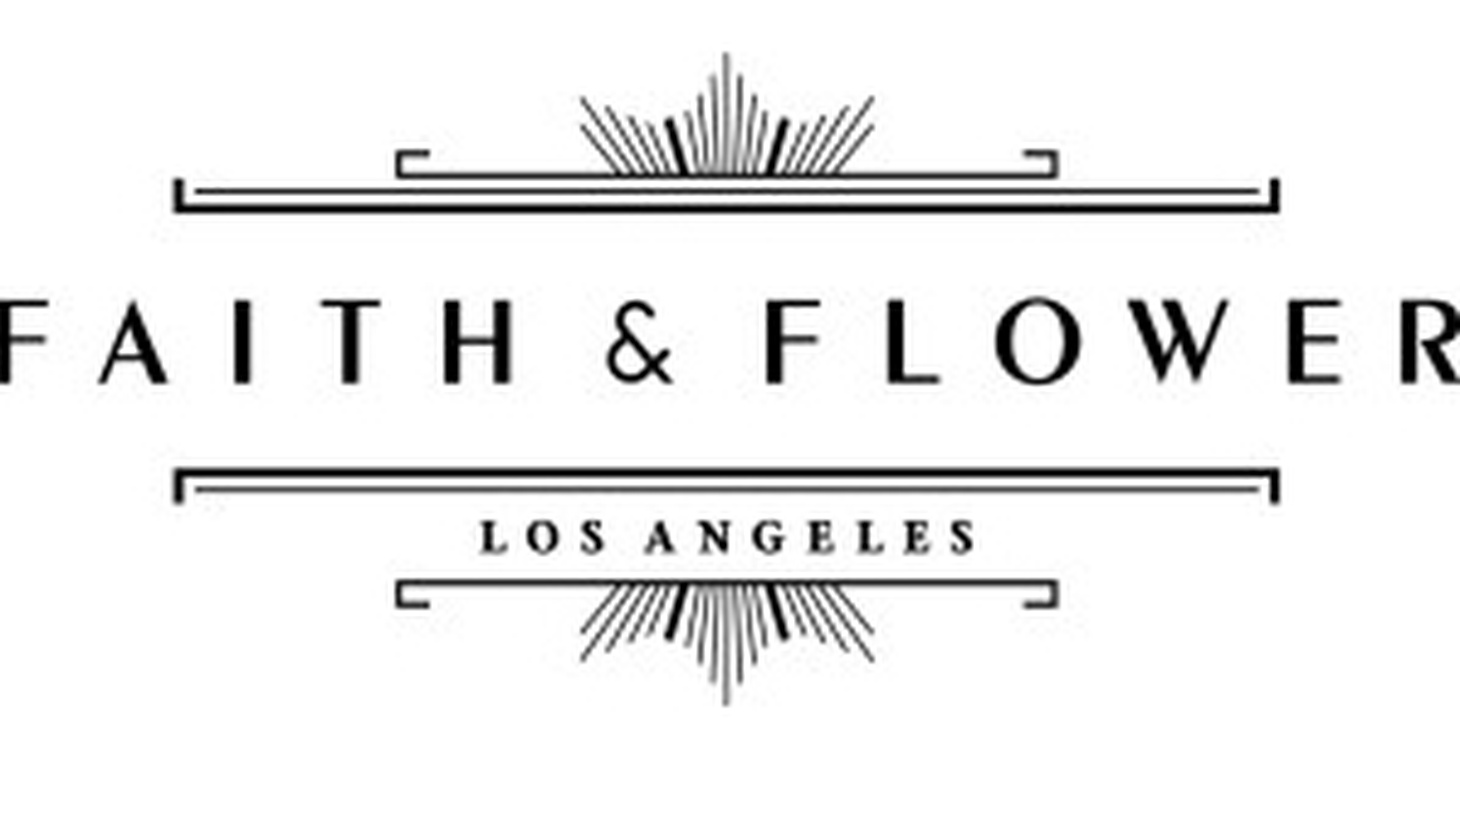 Jonathan Gold is the Pulitzer Prize-winning food writer for the Los Angeles Times. This week he reviews Faith & Flower, a new restaurant in downtown that specializes in cocktails inspired by 19th century mixology and has a great steak tartare to boot.